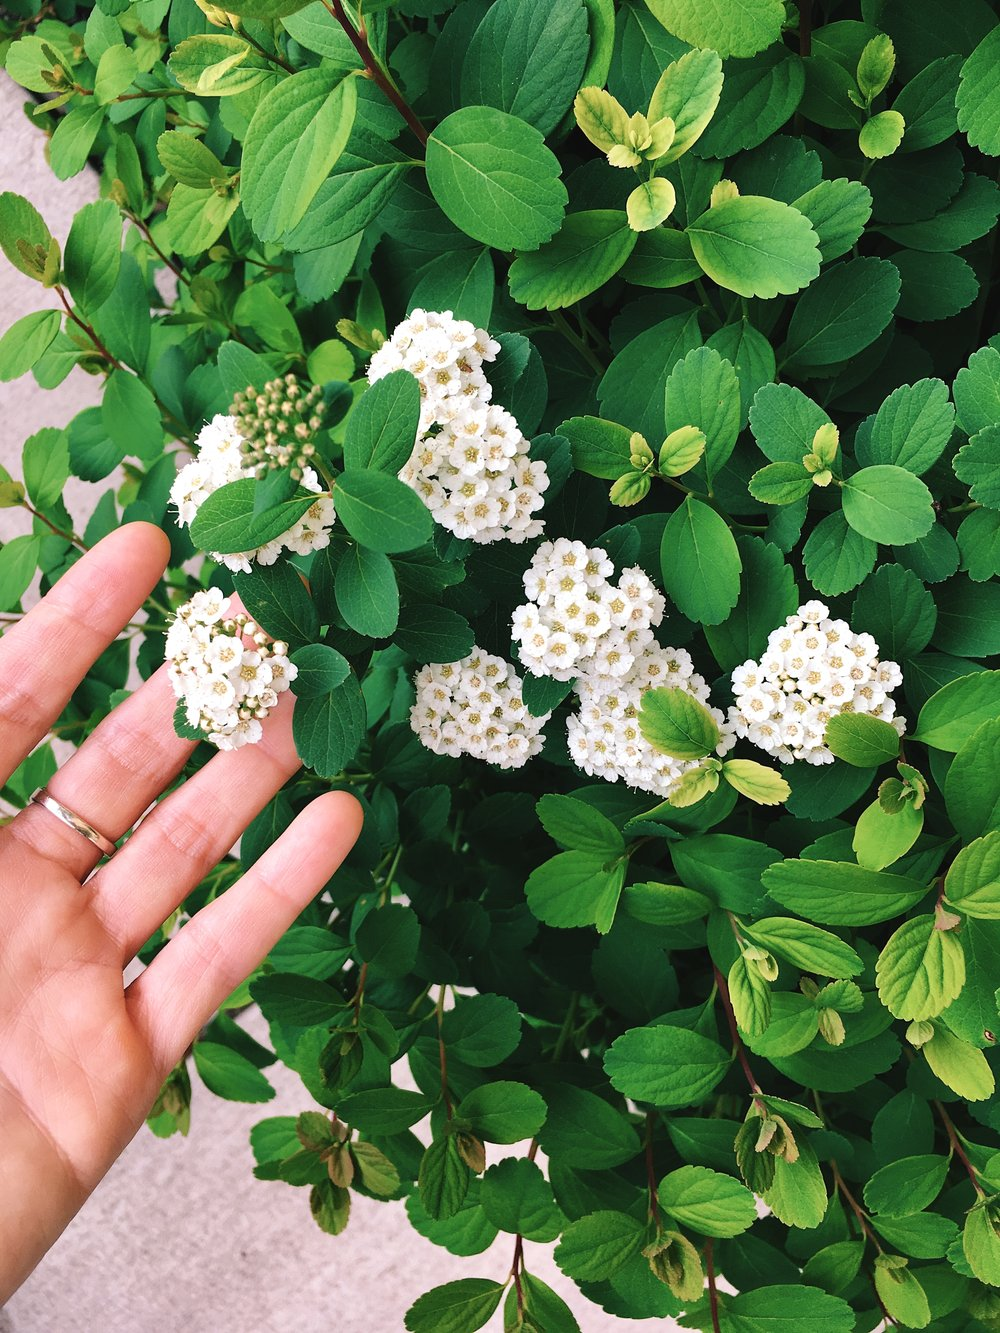 [photo of my hand holding small, clustered white flowers with green leaves. Photo by MM]